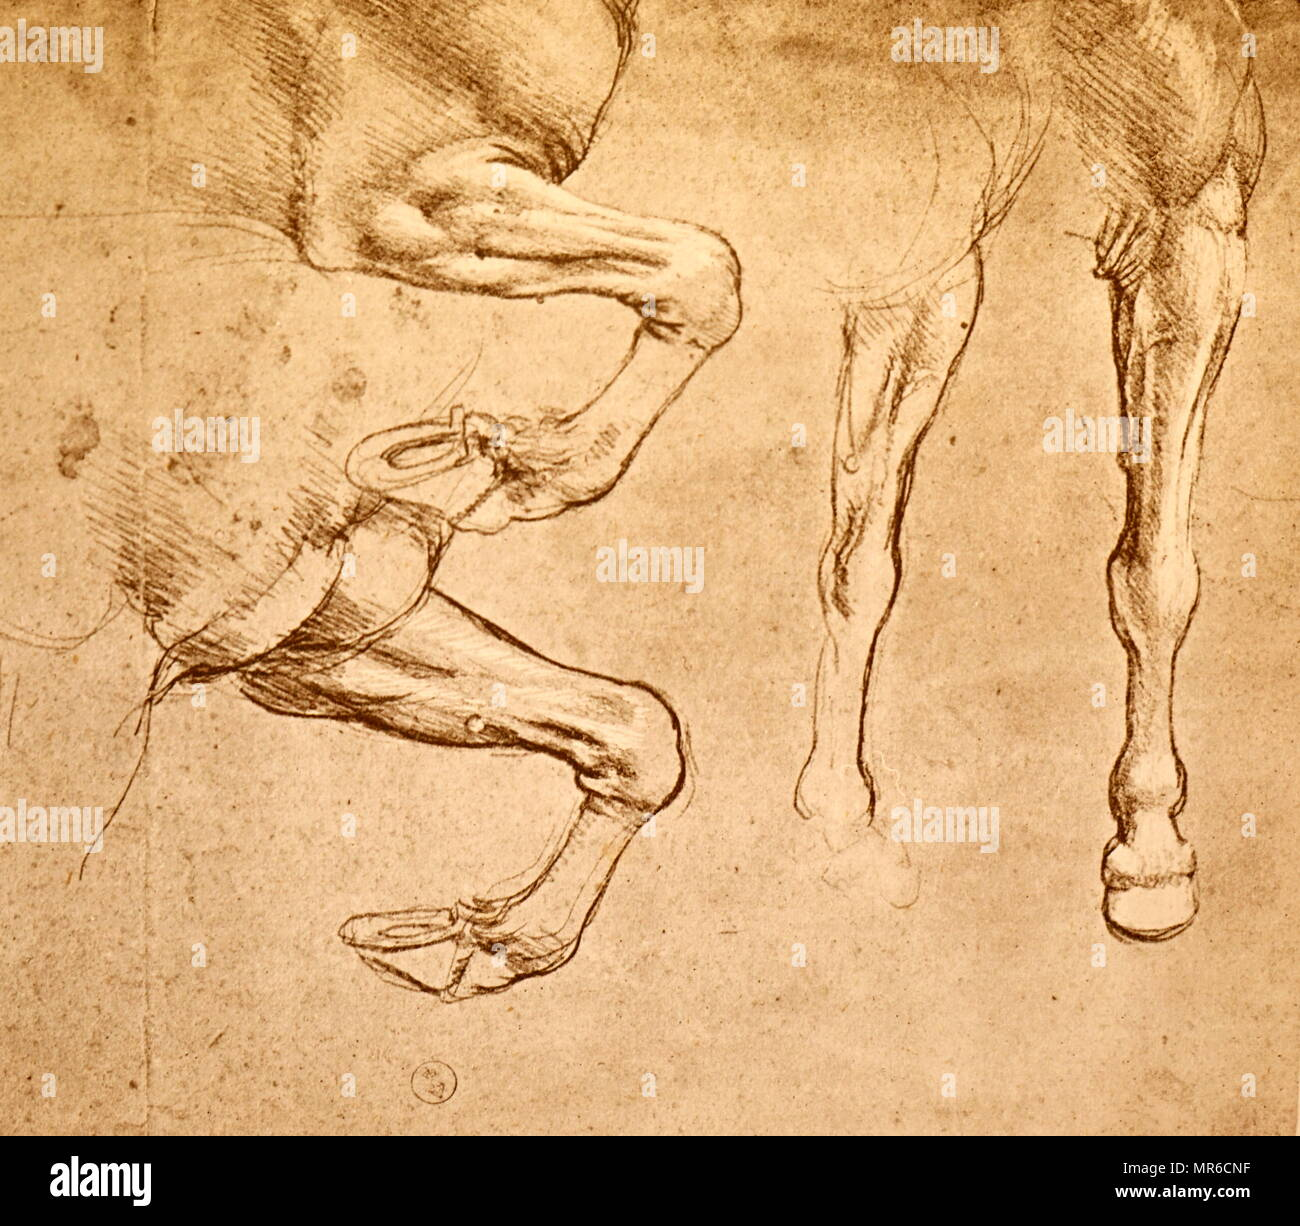 Four studies of horses legs; c1500. From the collection of the Museum of Fine Arts, Budapest. By Leonardo da Vinci (1452 – 1519), an Italian Renaissance polymath. Da Vinci was expert in invention, painting, architecture, science and engineering. considered - Stock Image